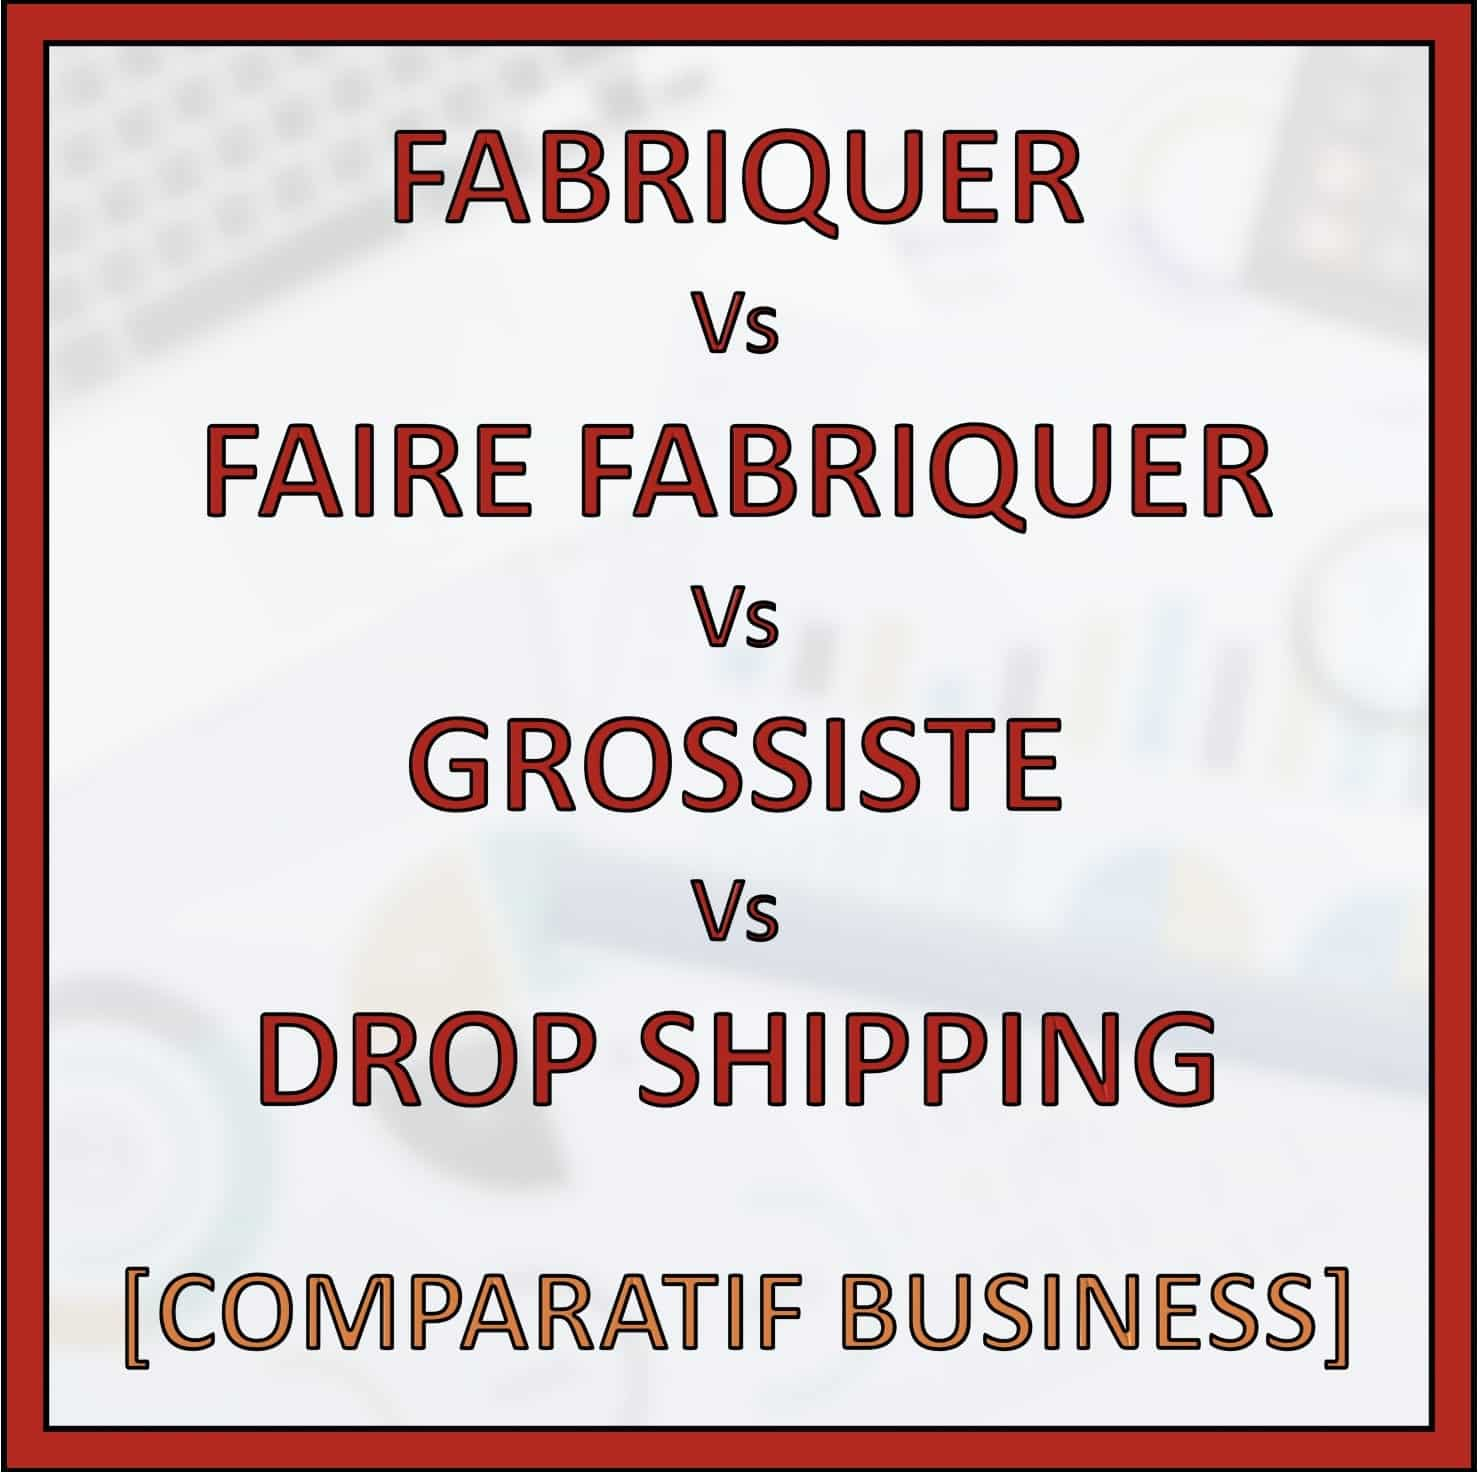 comparatif business fabriquer grossiste dropshipping